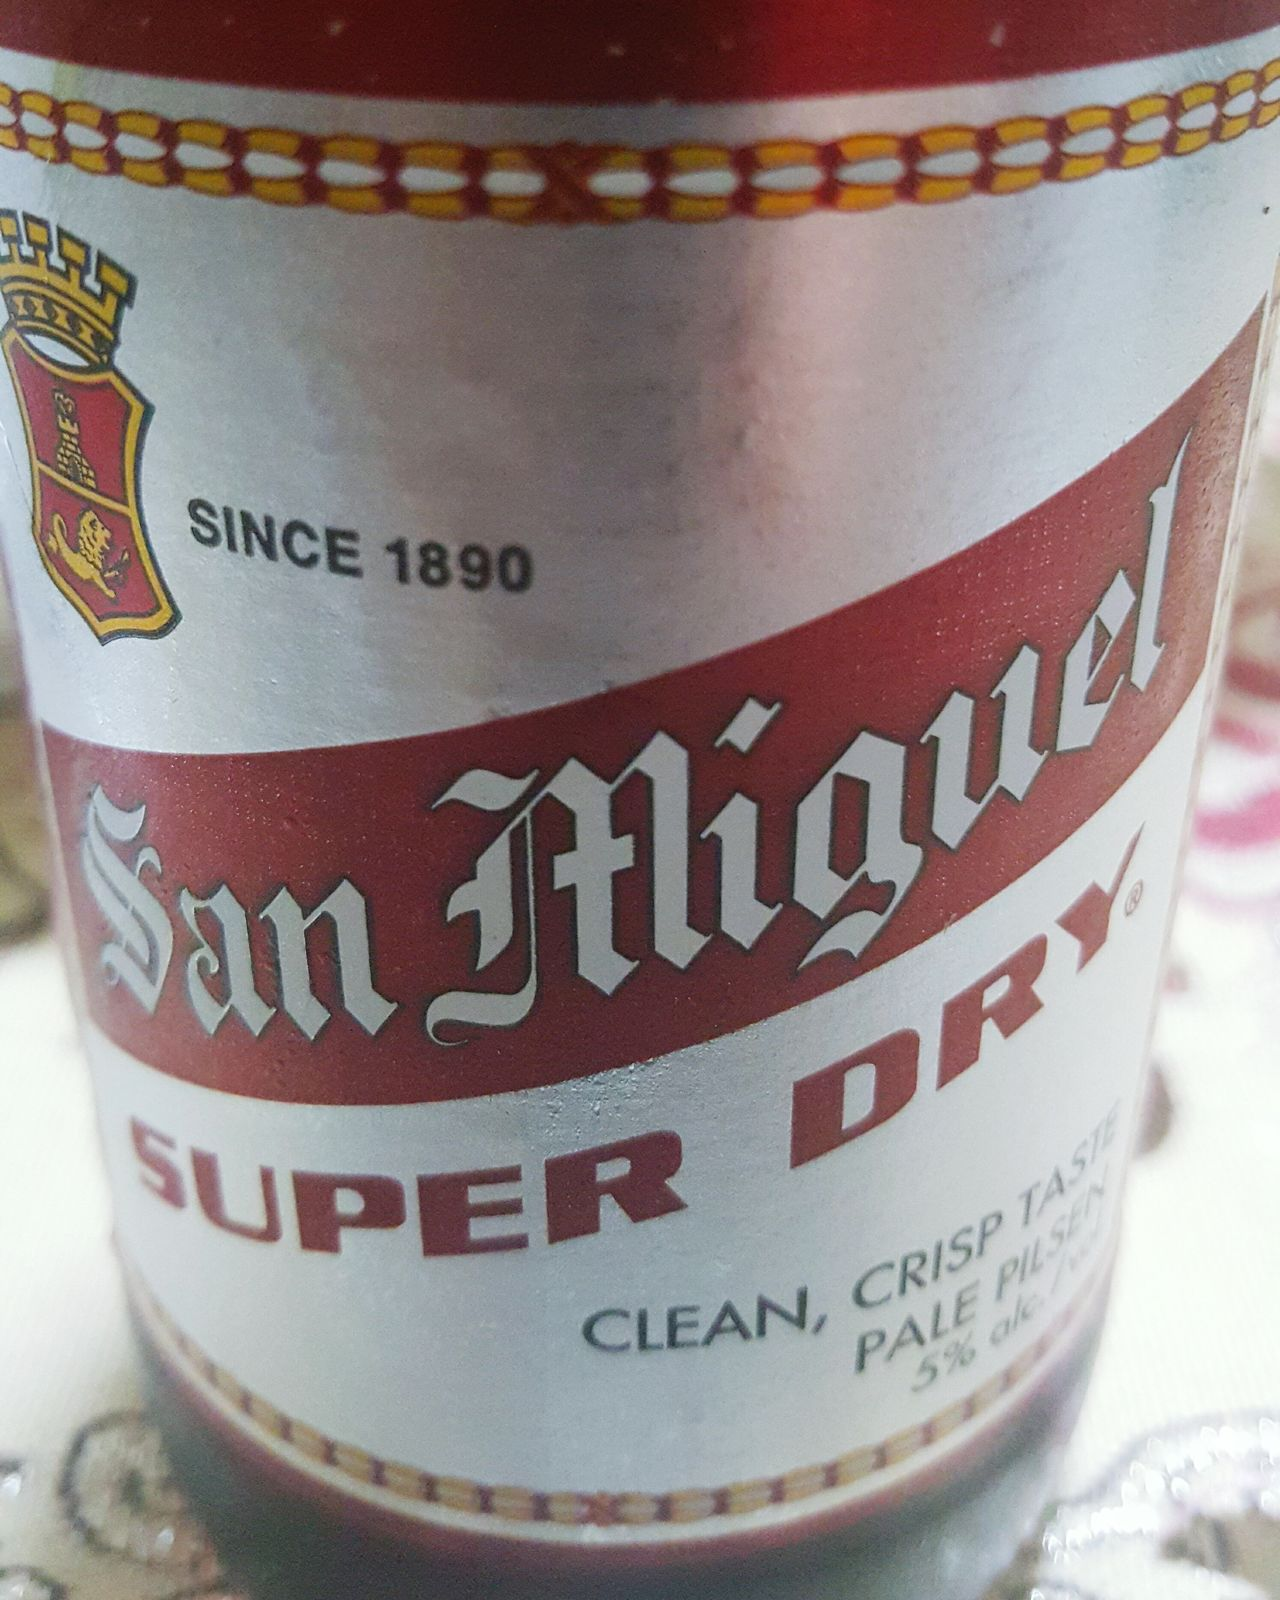 Favorite... SMB SanMiguelBeer  Superdry S6edgephotography